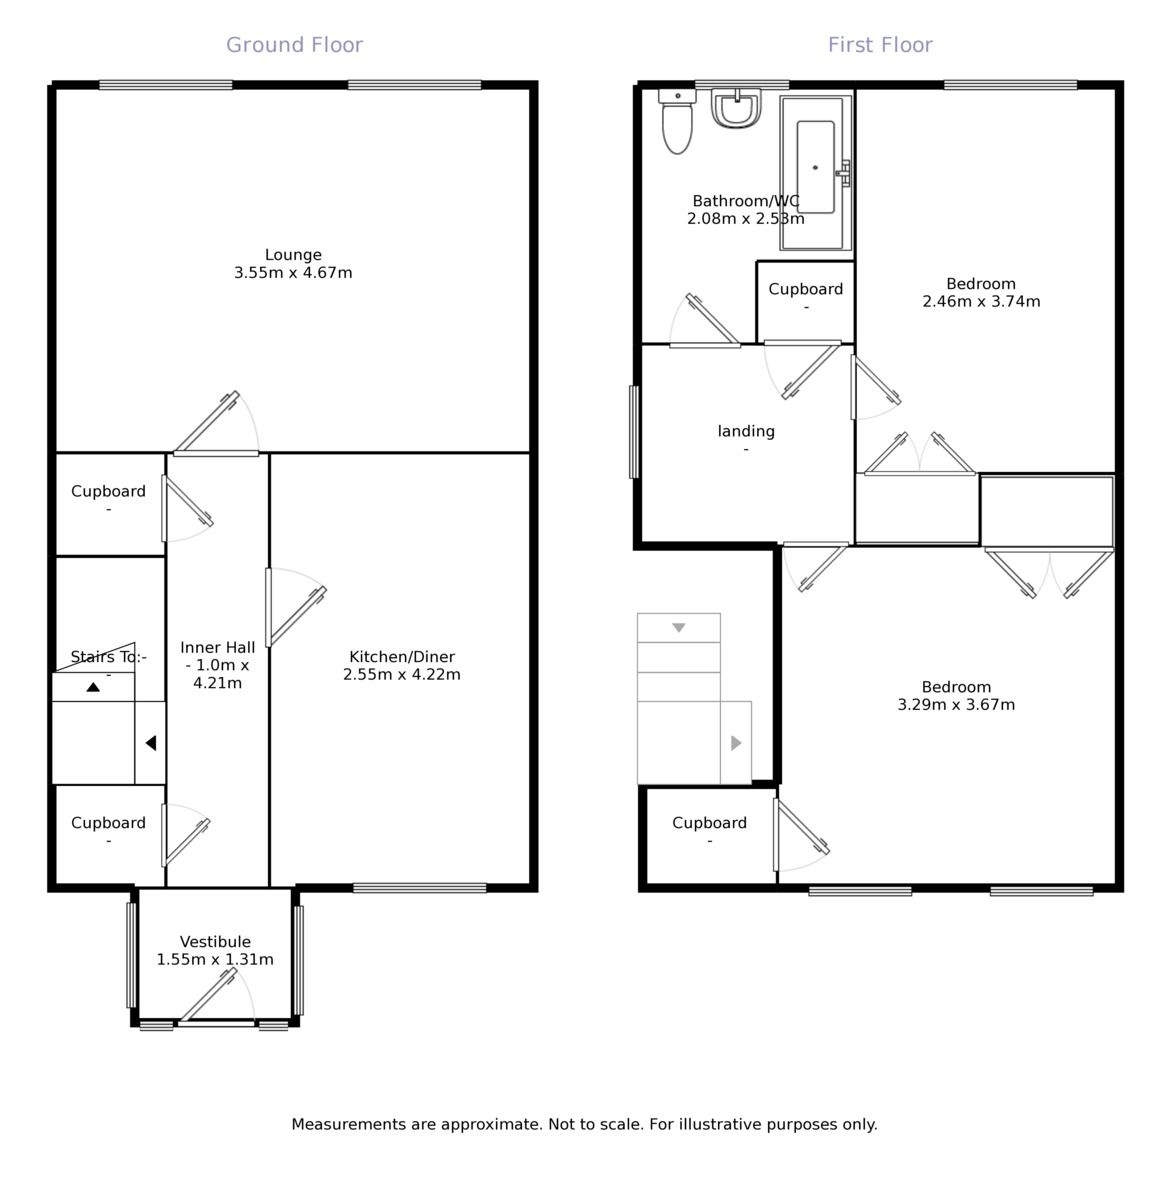 chain free houses for sale in elgin  morayshire your move 3 bedroom property for sale dundee 3/4 bedroom houses for sale dundee